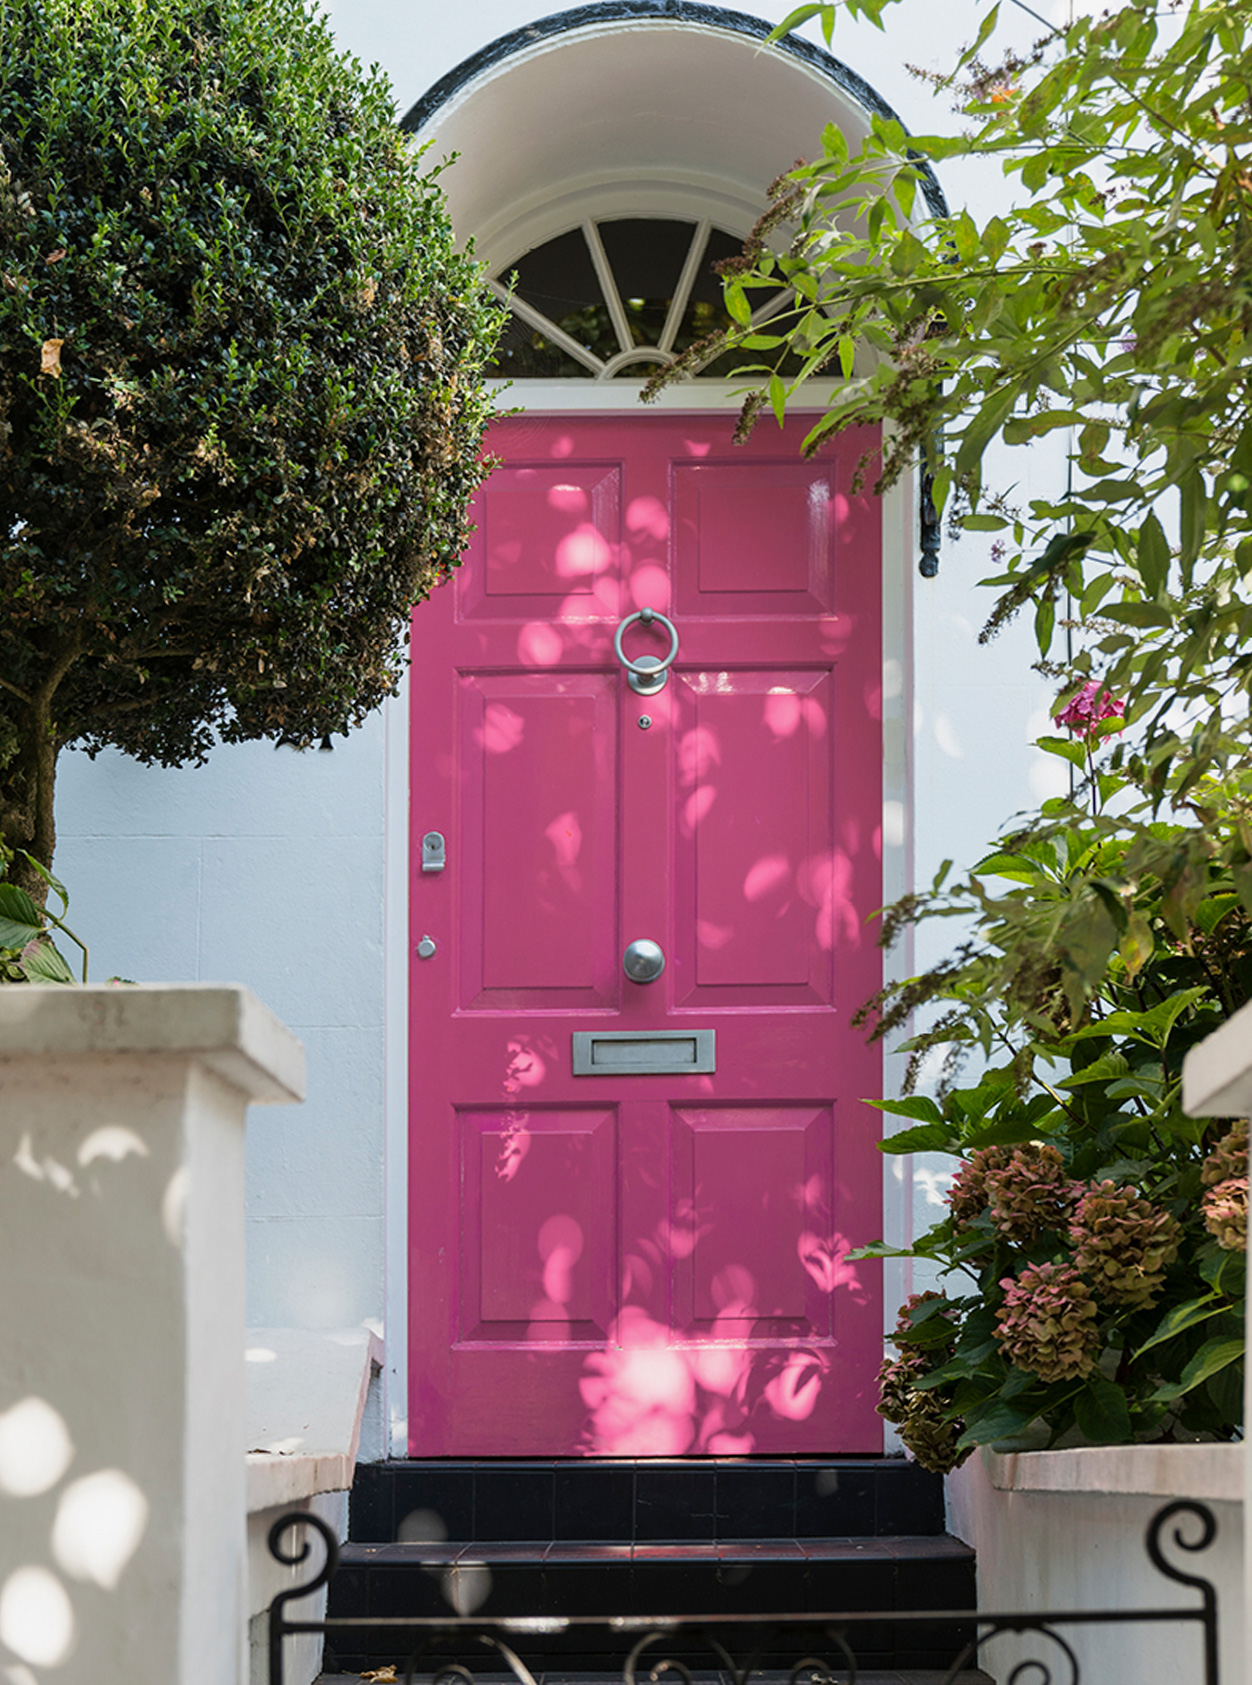 A classic hampstead townhouse frontage with a pink front door, with surrounding greenery.